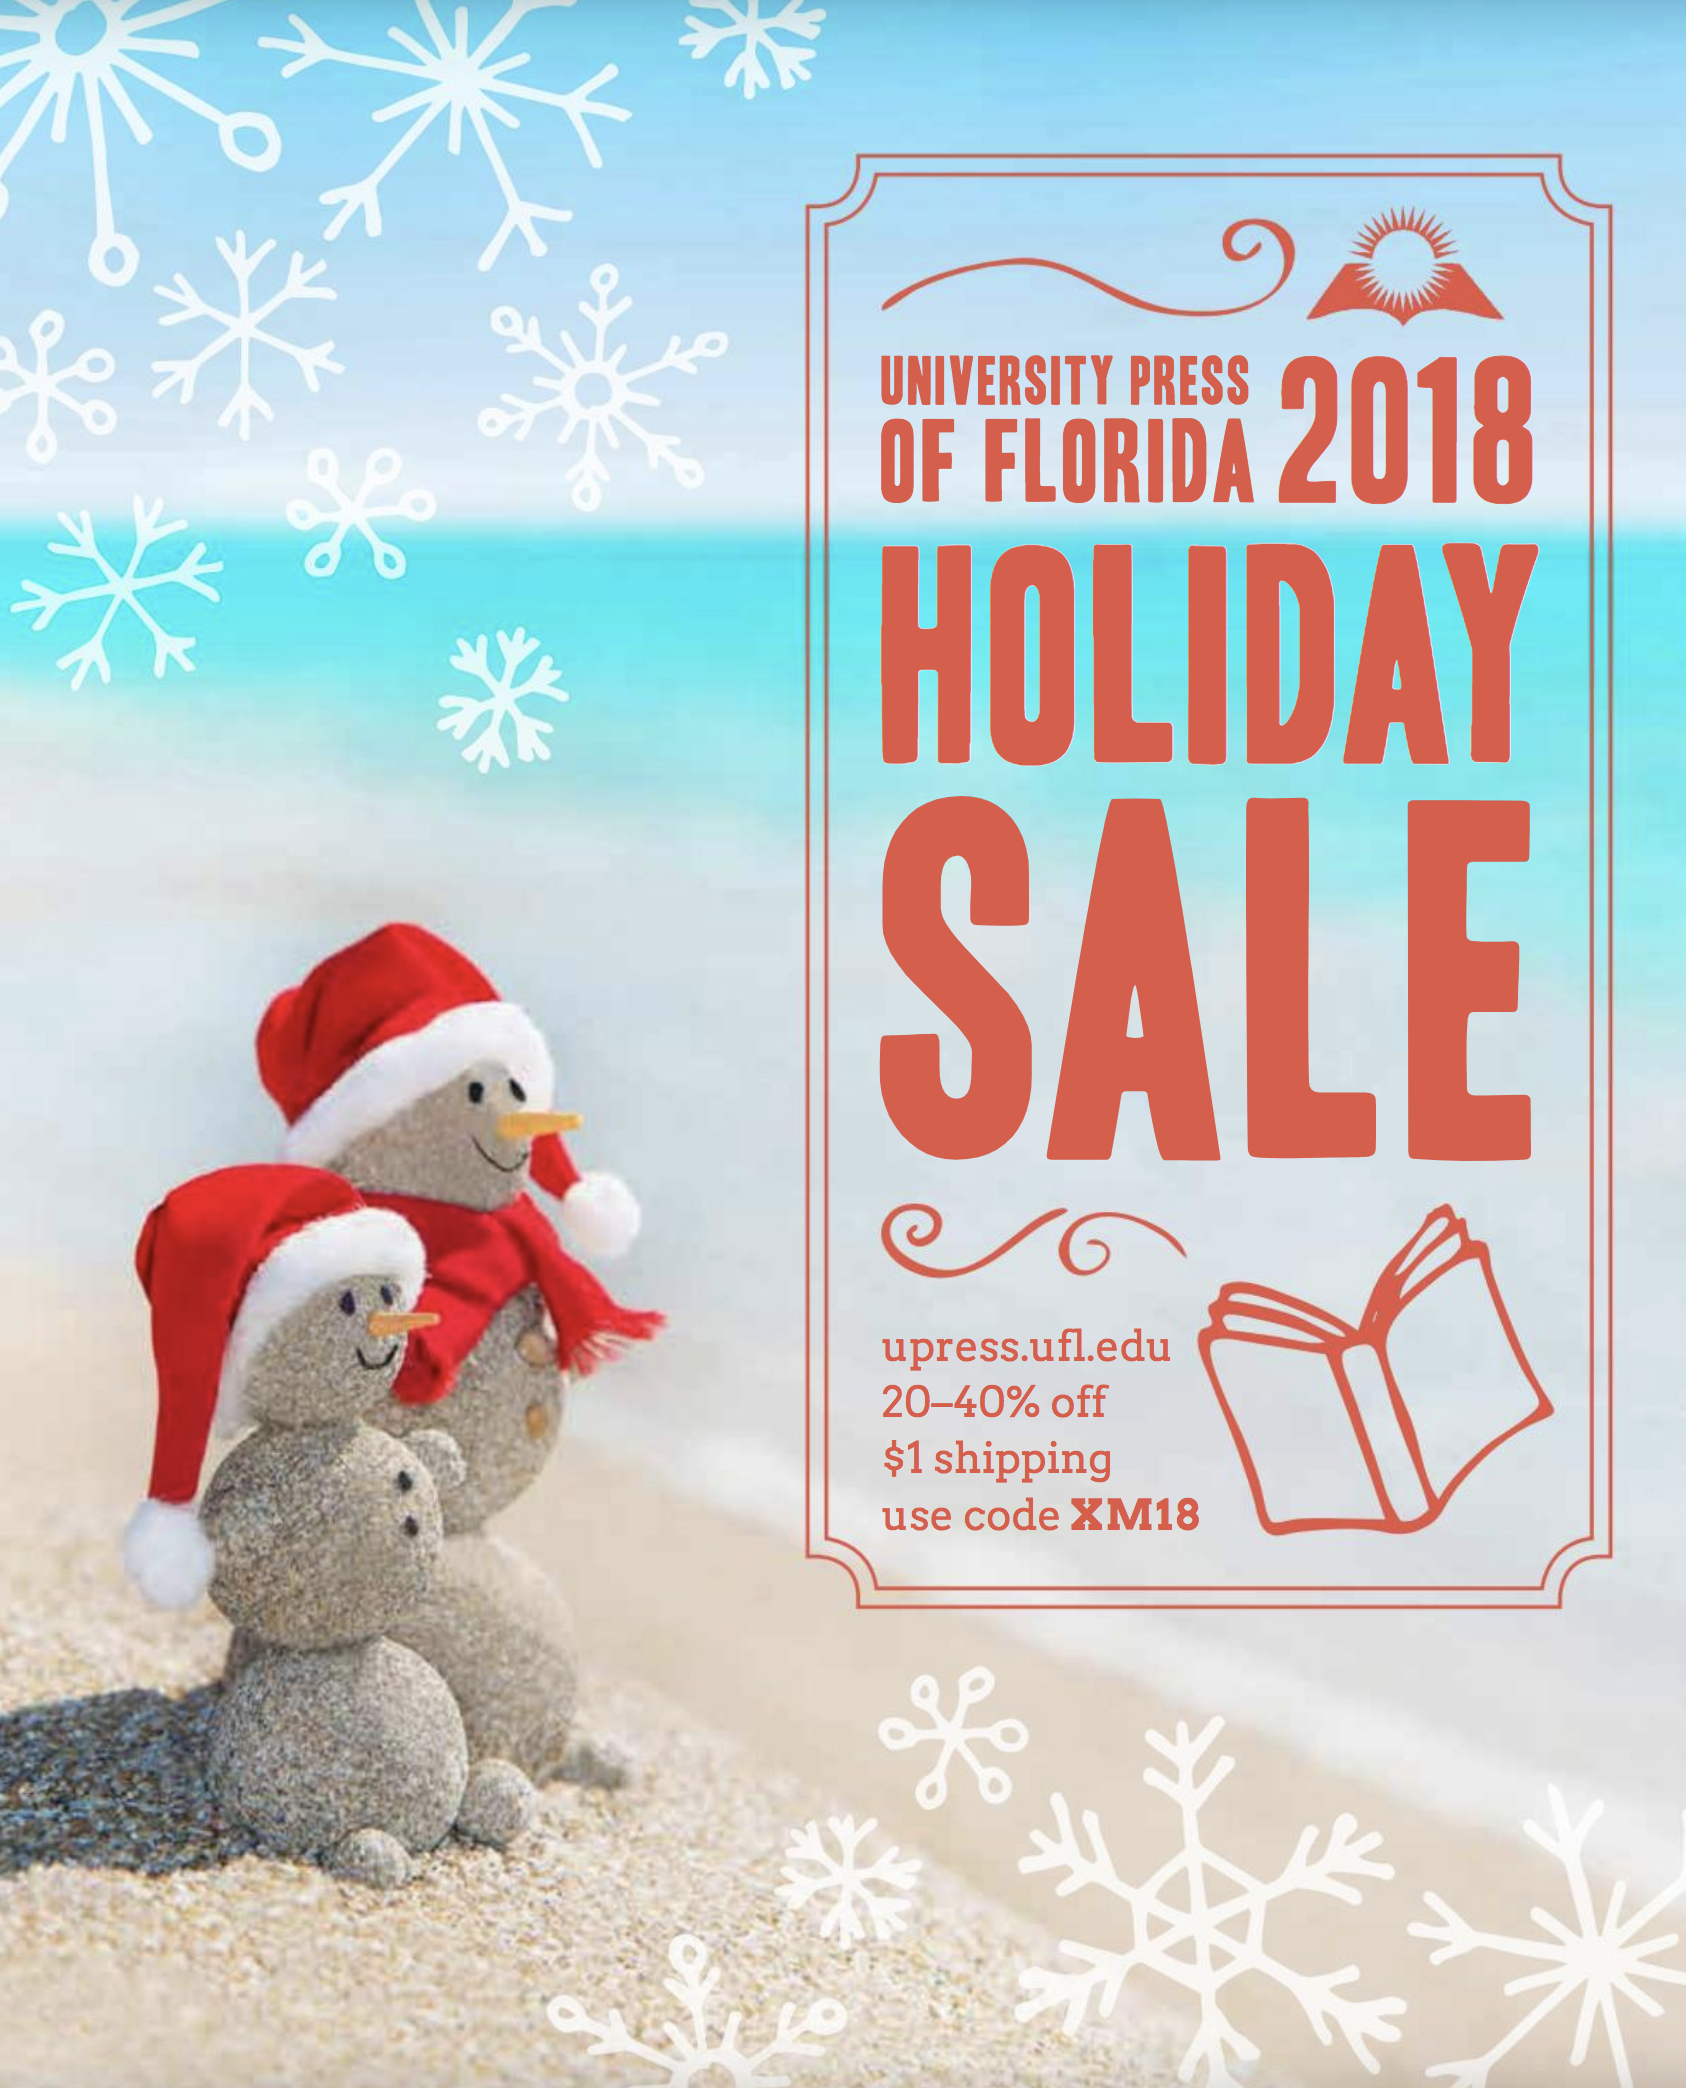 Snowmen on breach and text University Press 2018 holiday sale